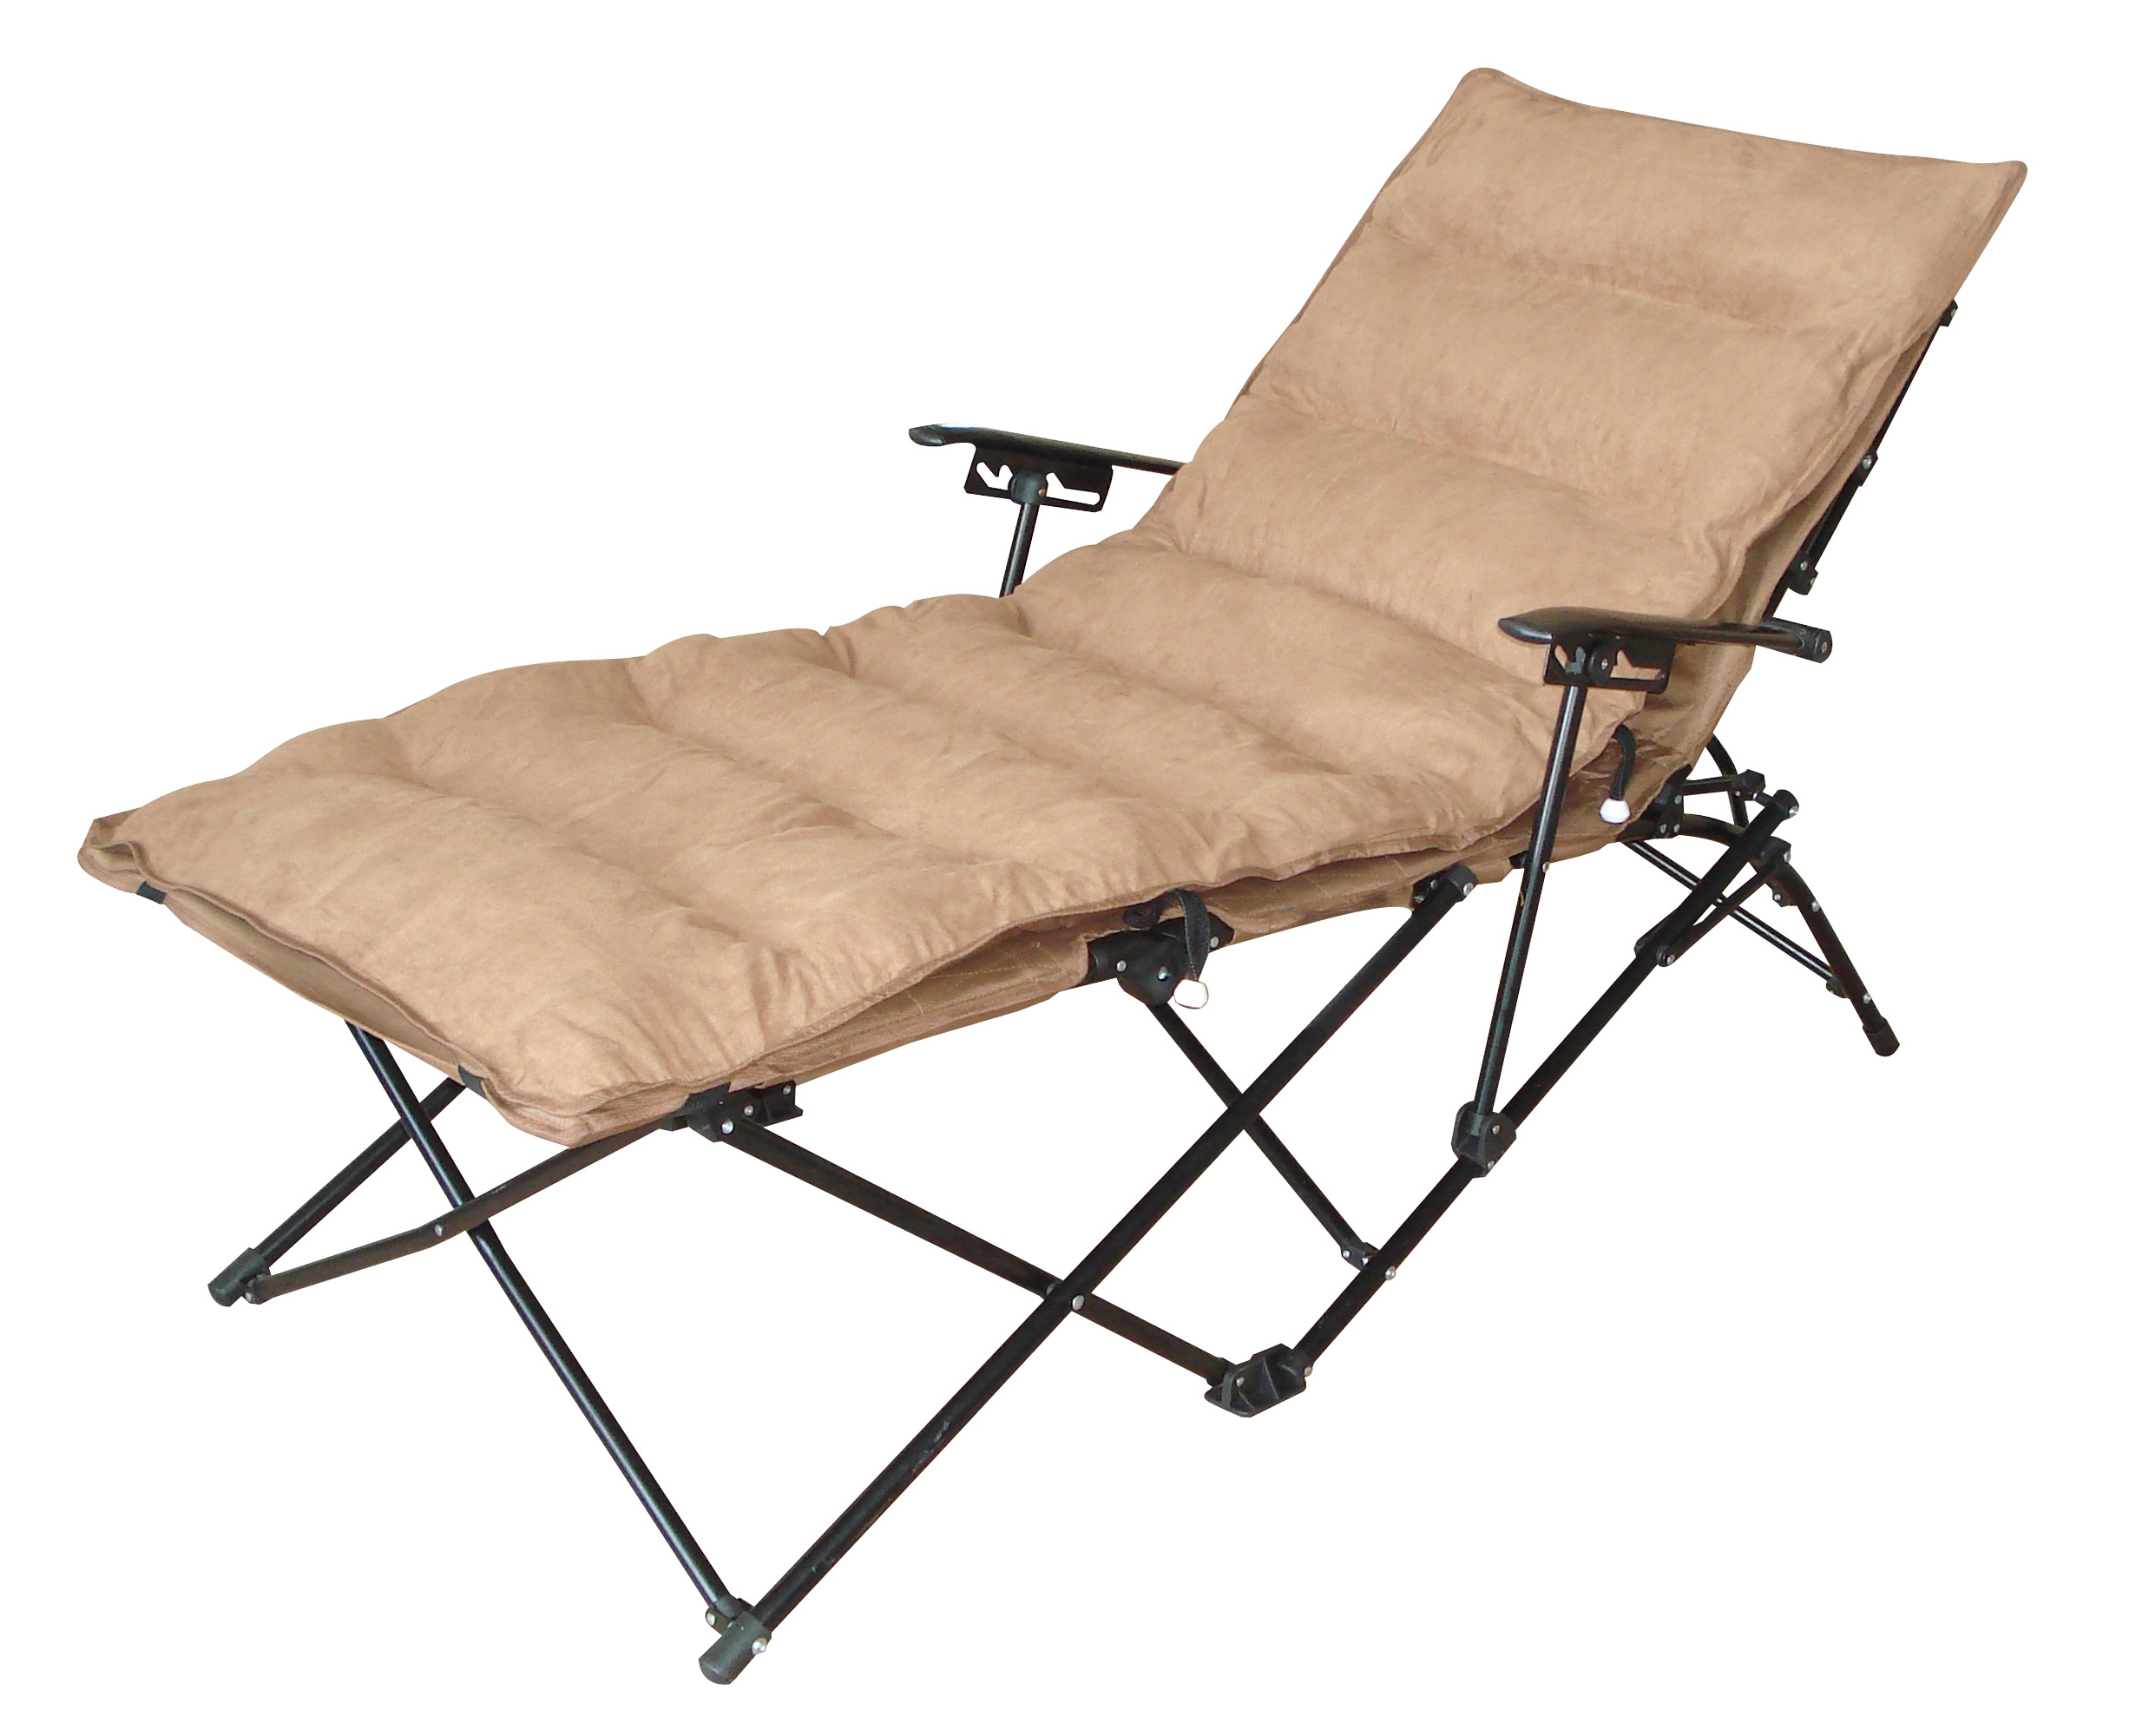 Outdoor : Folding Chaise Lounge Chair Jelly Lounge Chair Zero With Regard To Recent Lightweight Chaise Lounge Chairs (View 13 of 15)